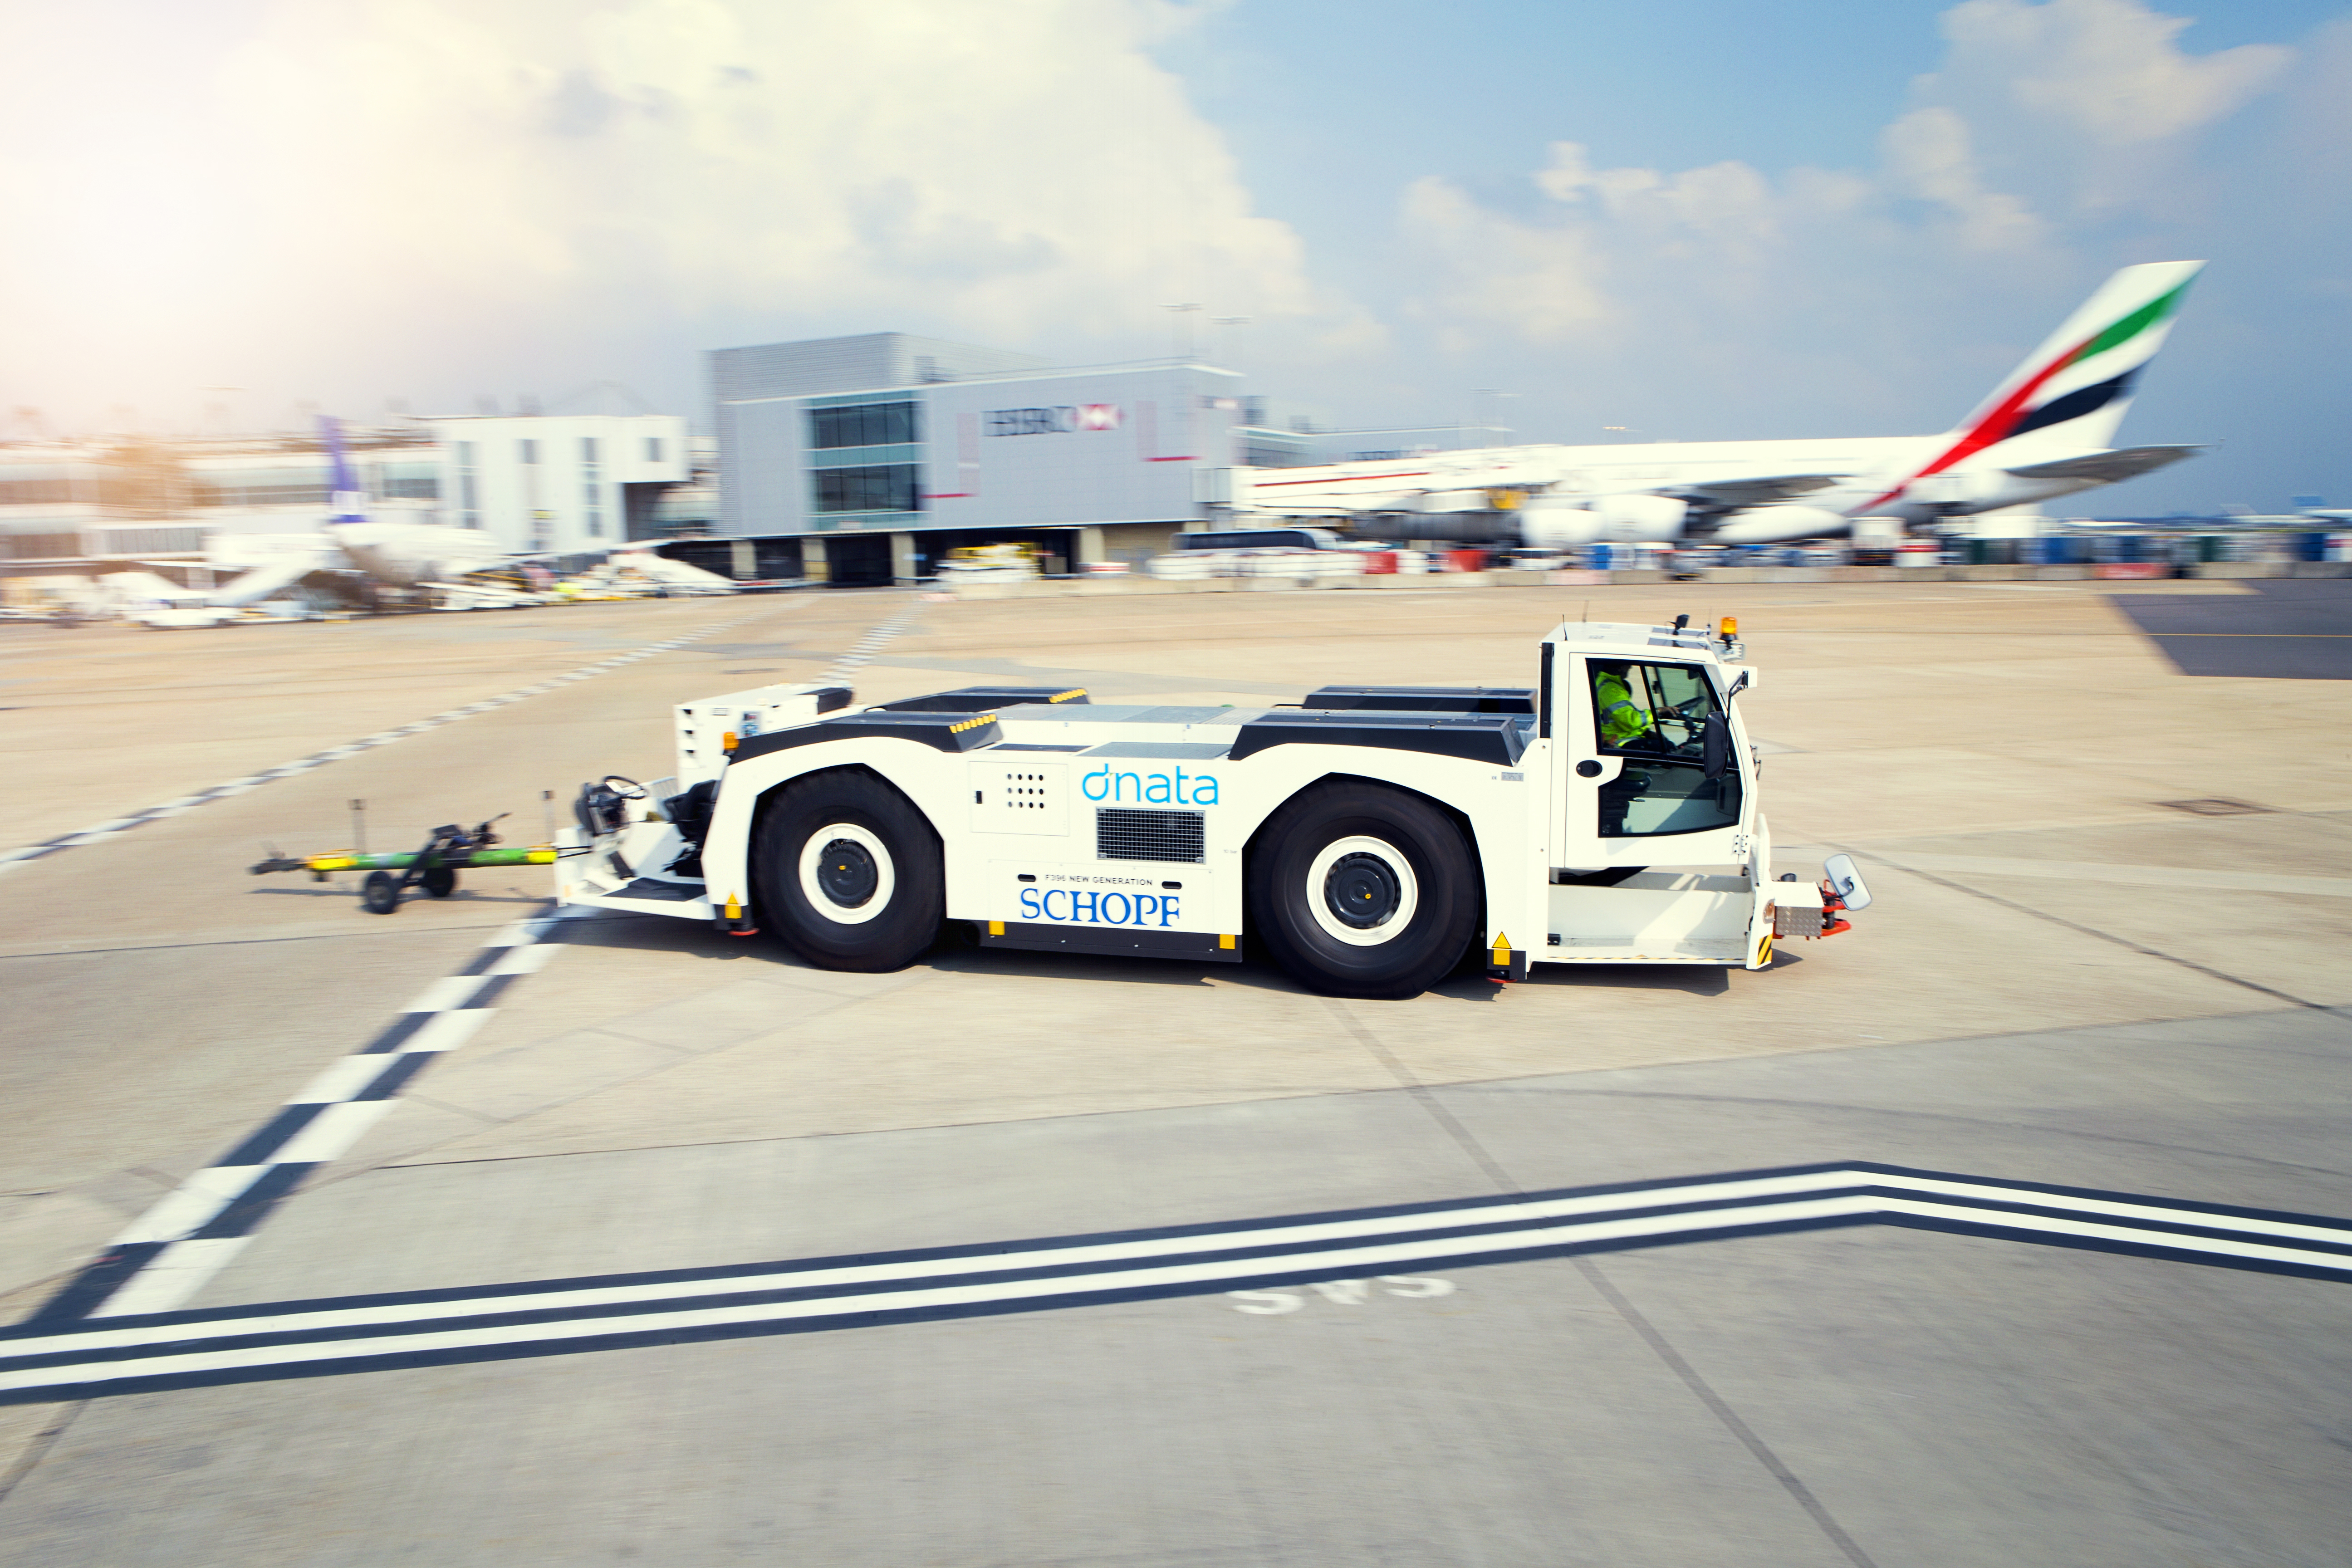 dnata's Pushback Tractors Help Travellers Start Their Journey at Dubai Airport